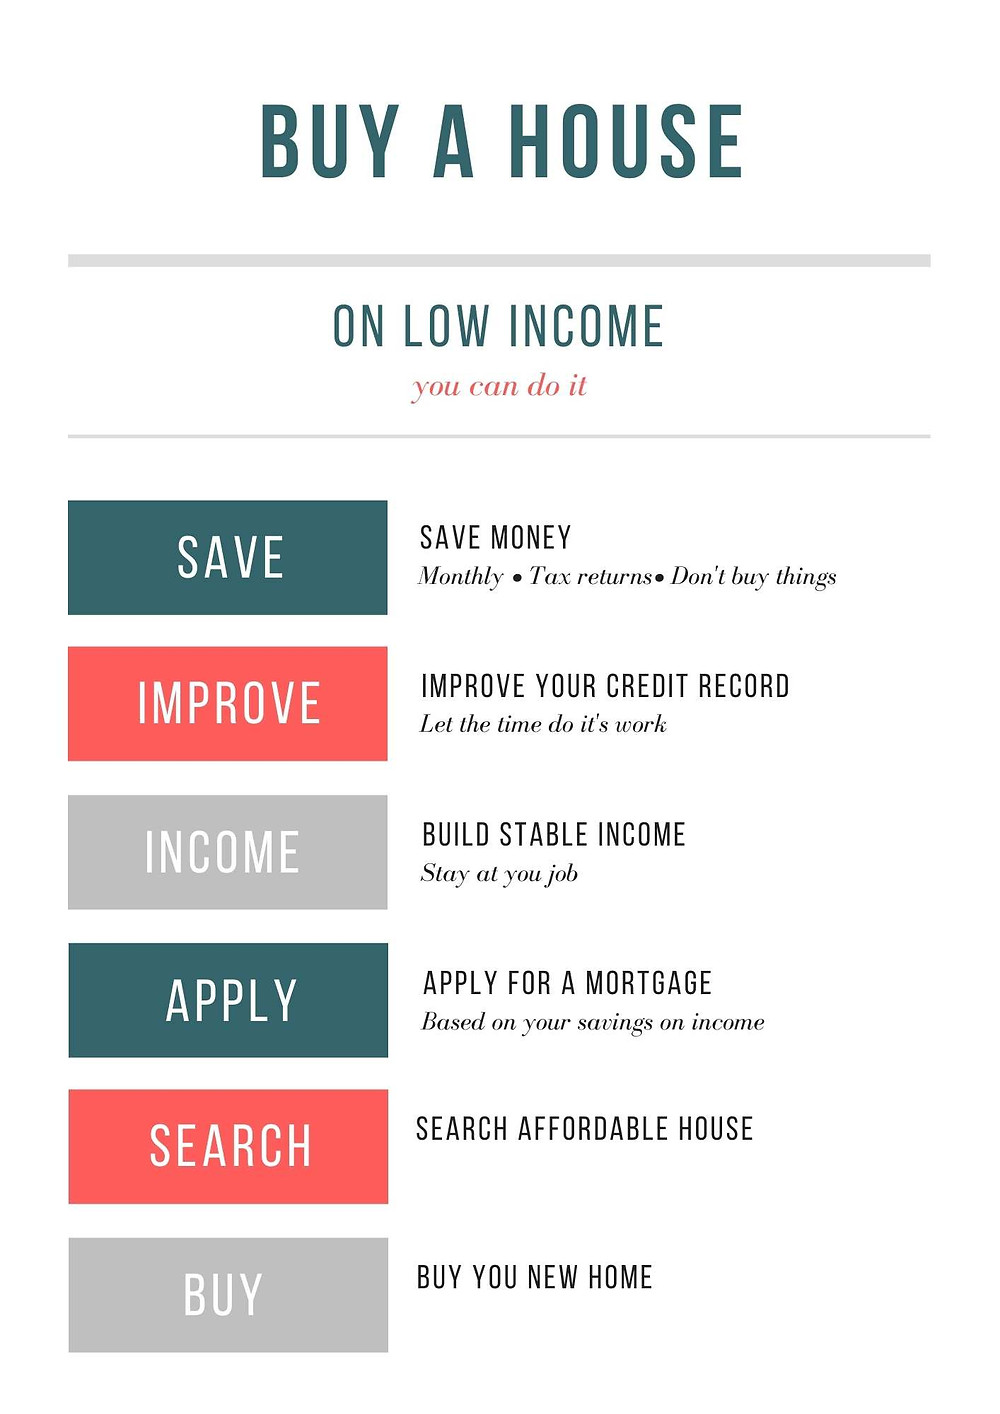 Buy a House on Low Income flow chart